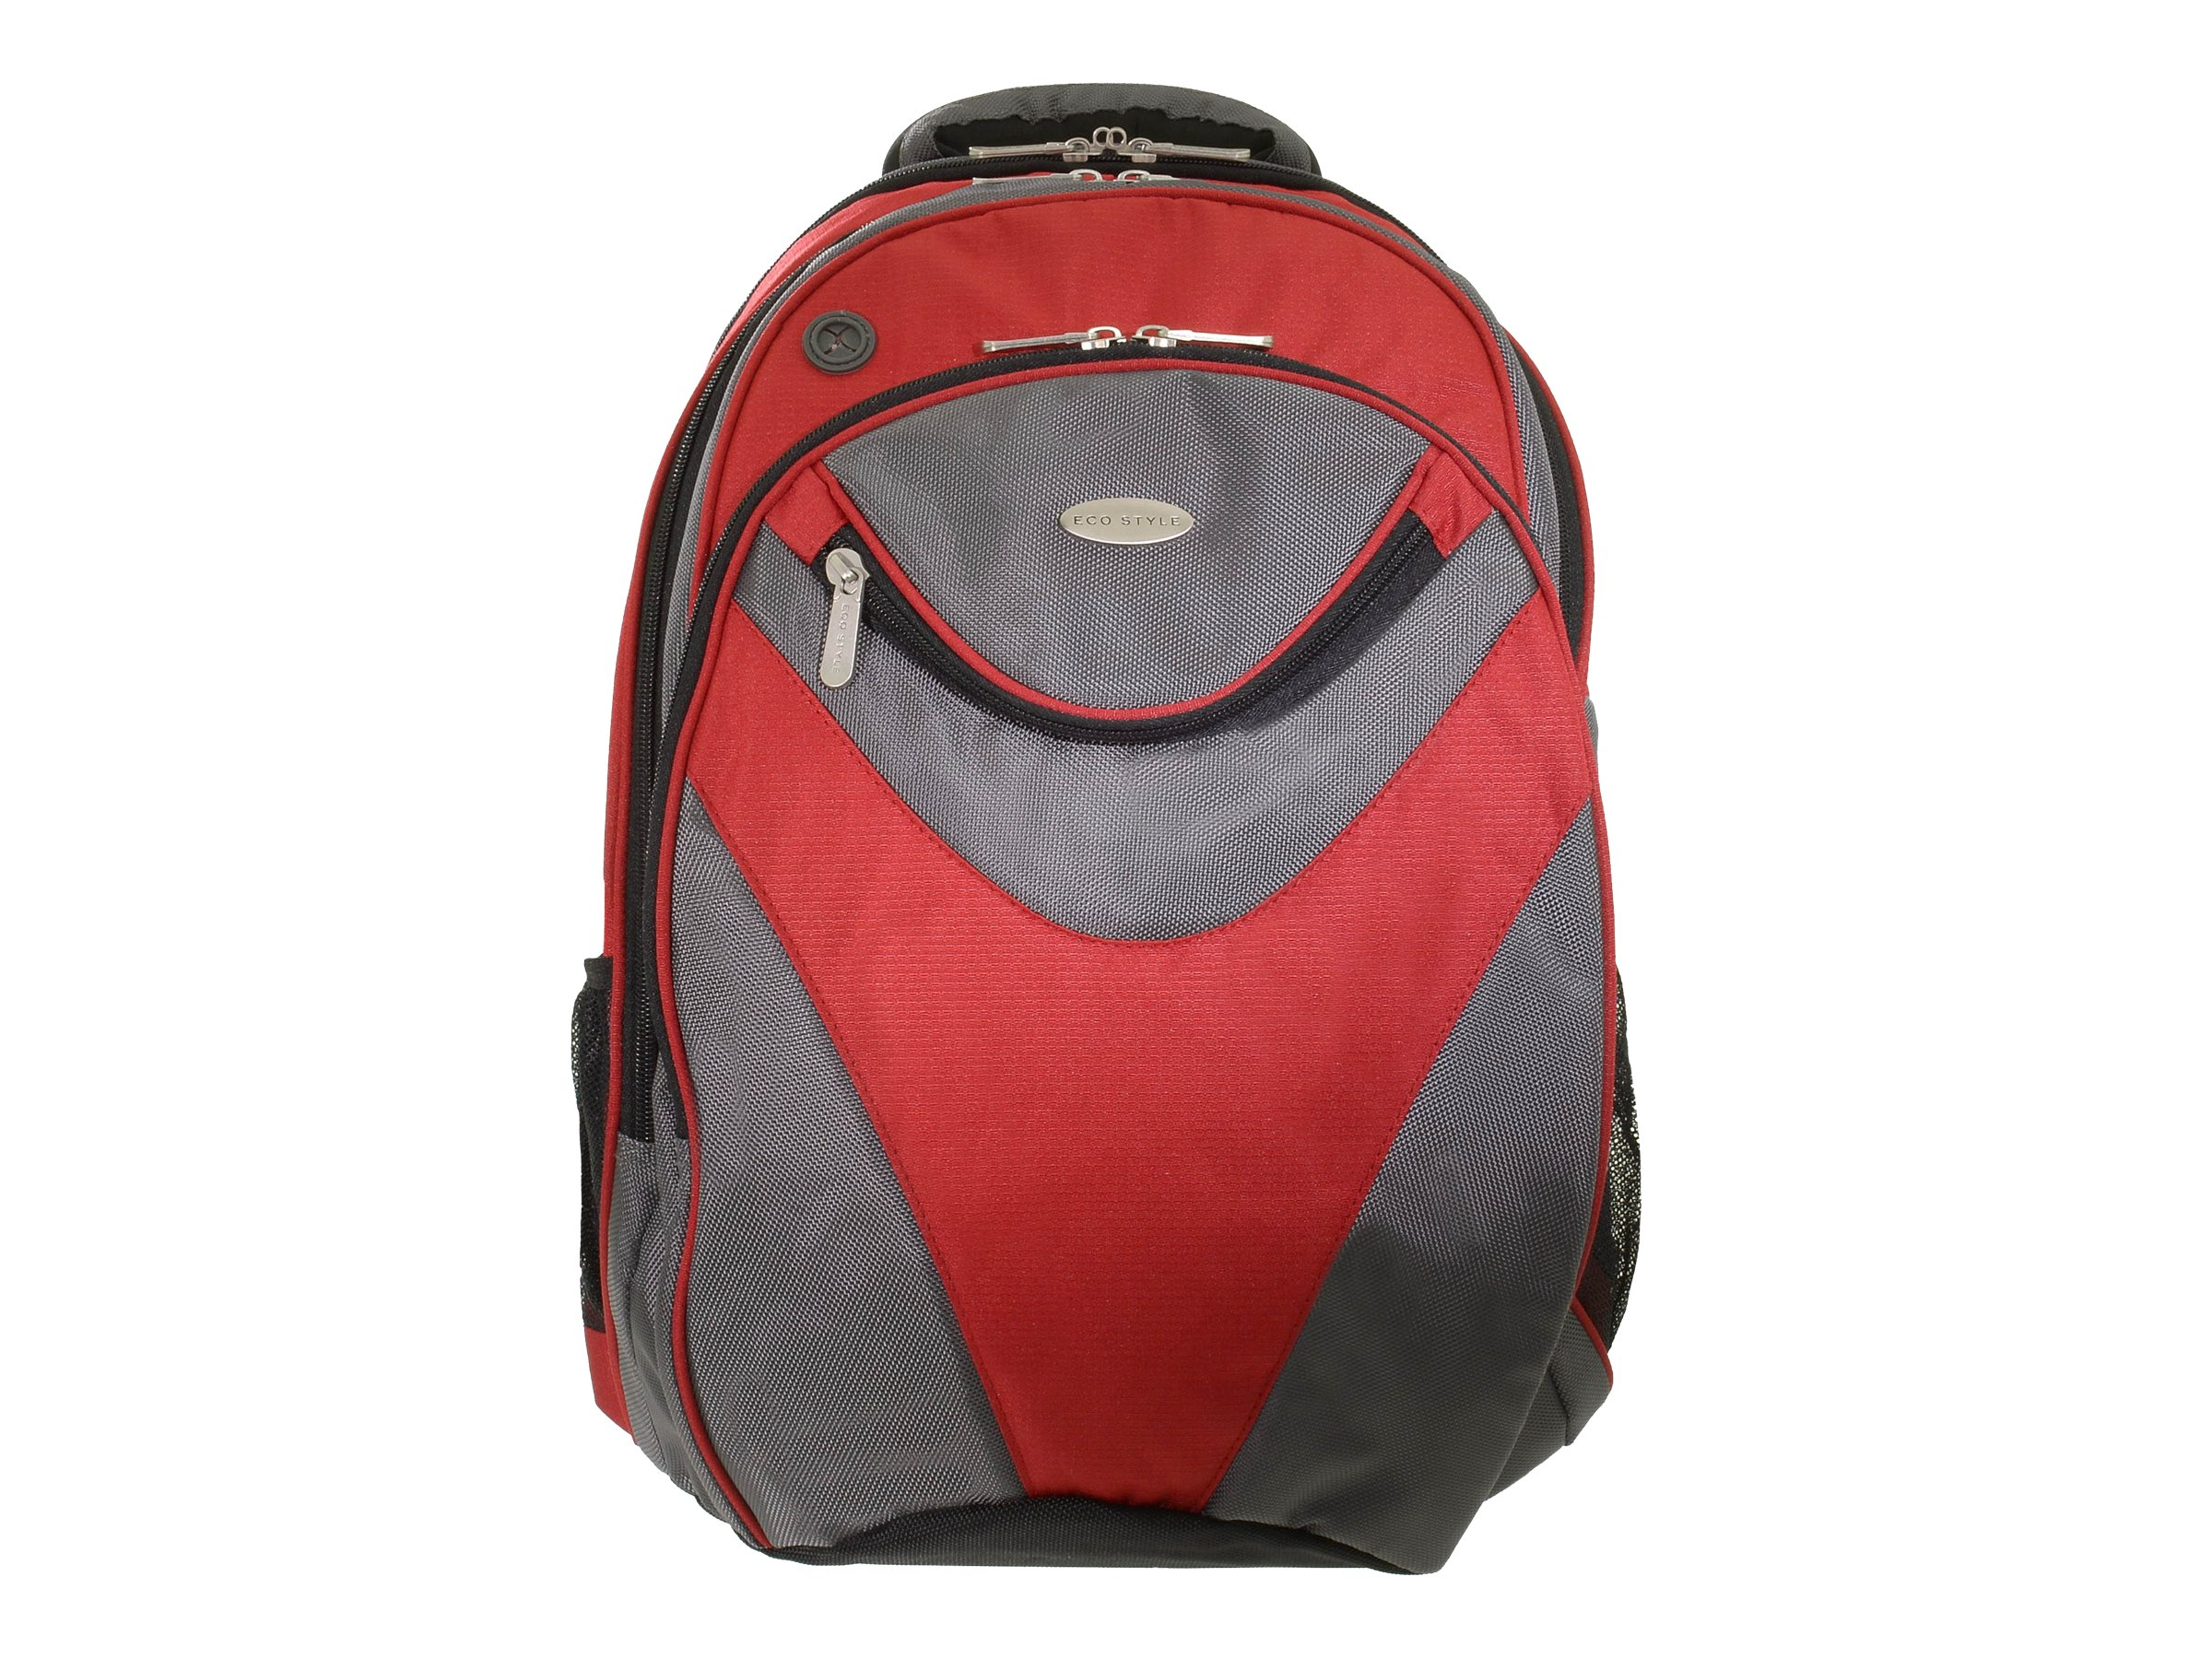 Eco Style Vortex Backpack Checkpoint Friendly, EVOR-BP16-CF, 17977133, Carrying Cases - Other